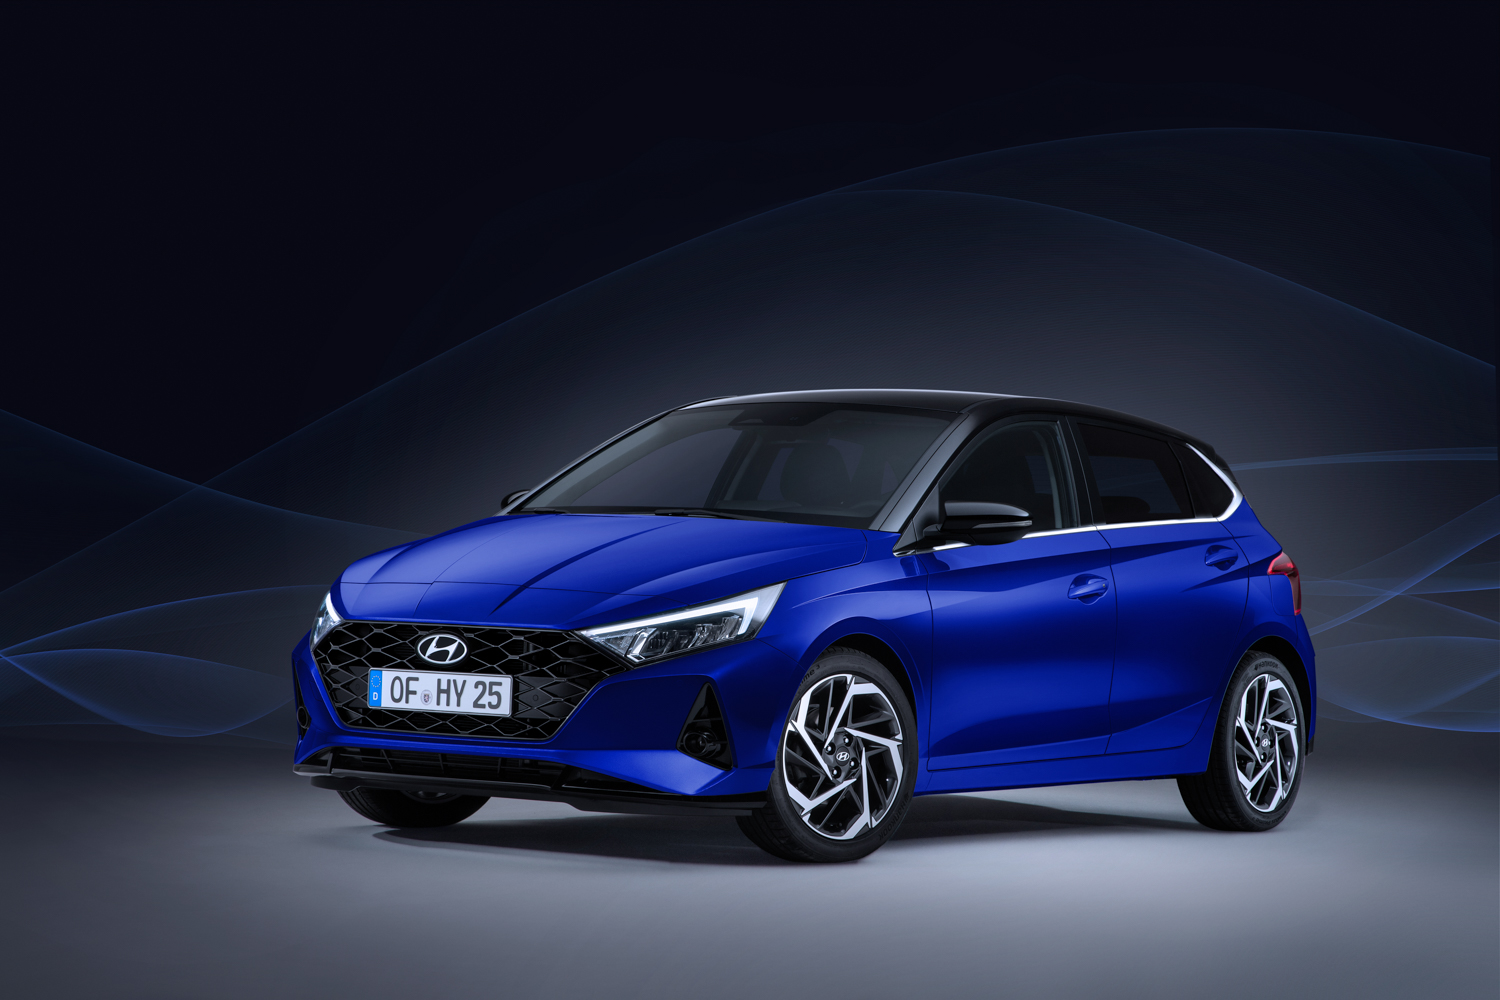 Car News | Hyundai gives new i20 some dramatic styling | CompleteCar.ie